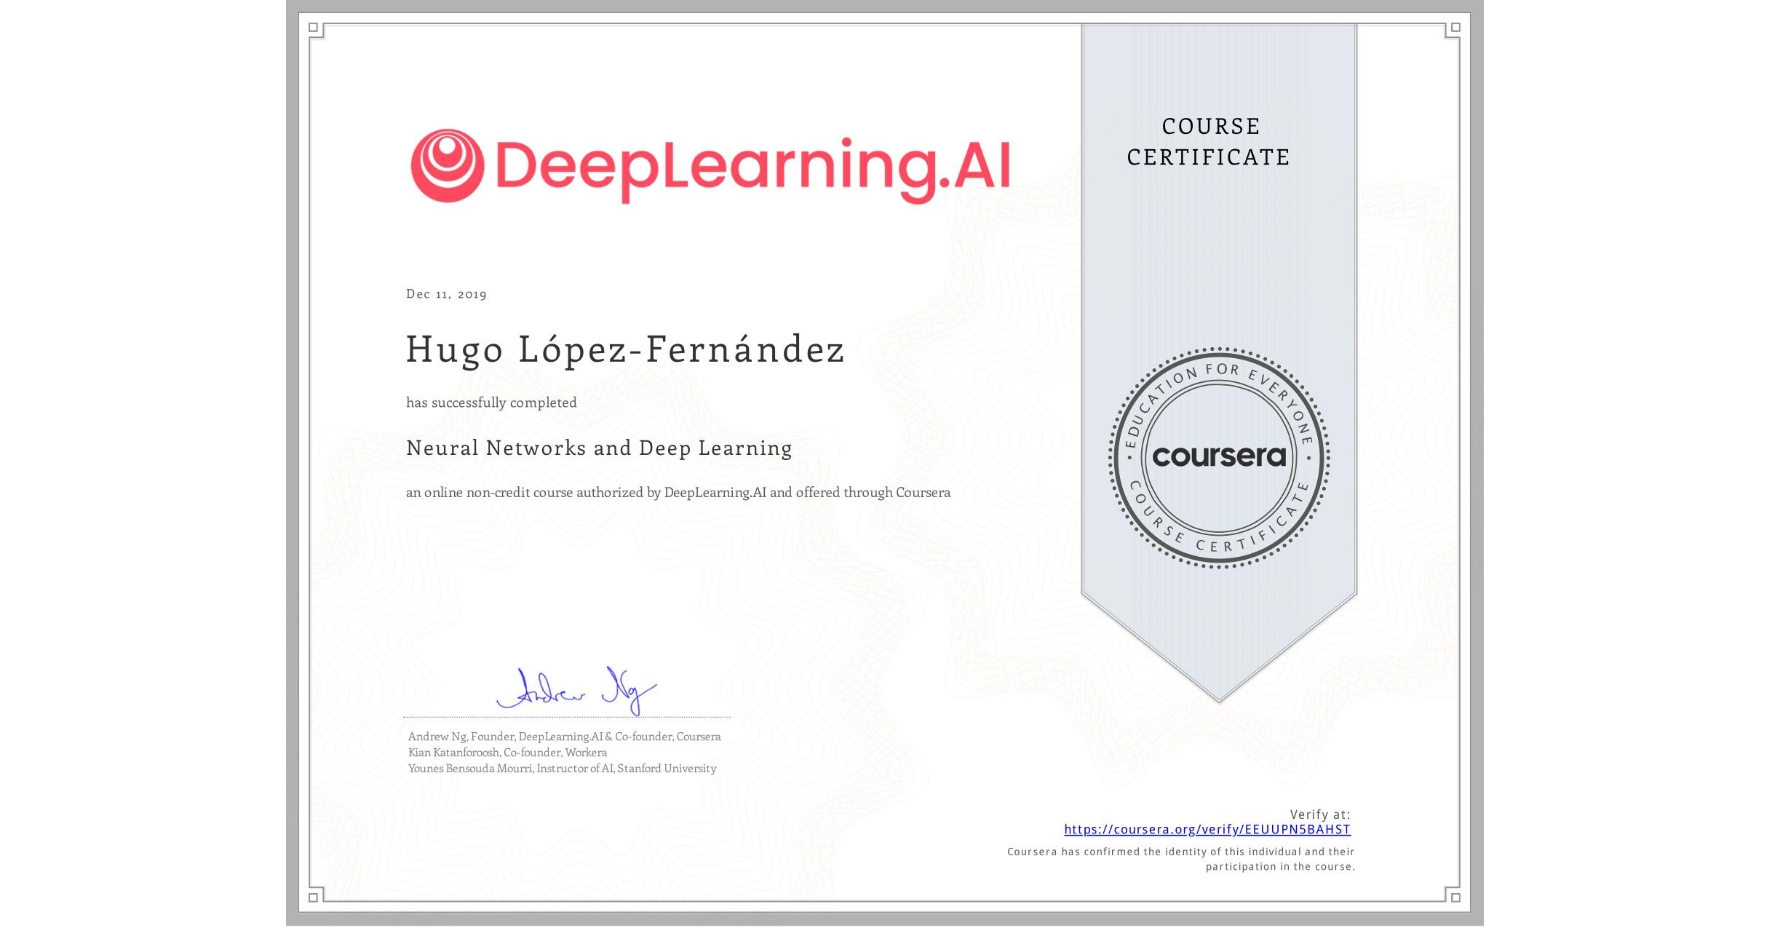 View certificate for Hugo López-Fernández, Neural Networks and Deep Learning, an online non-credit course authorized by DeepLearning.AI and offered through Coursera